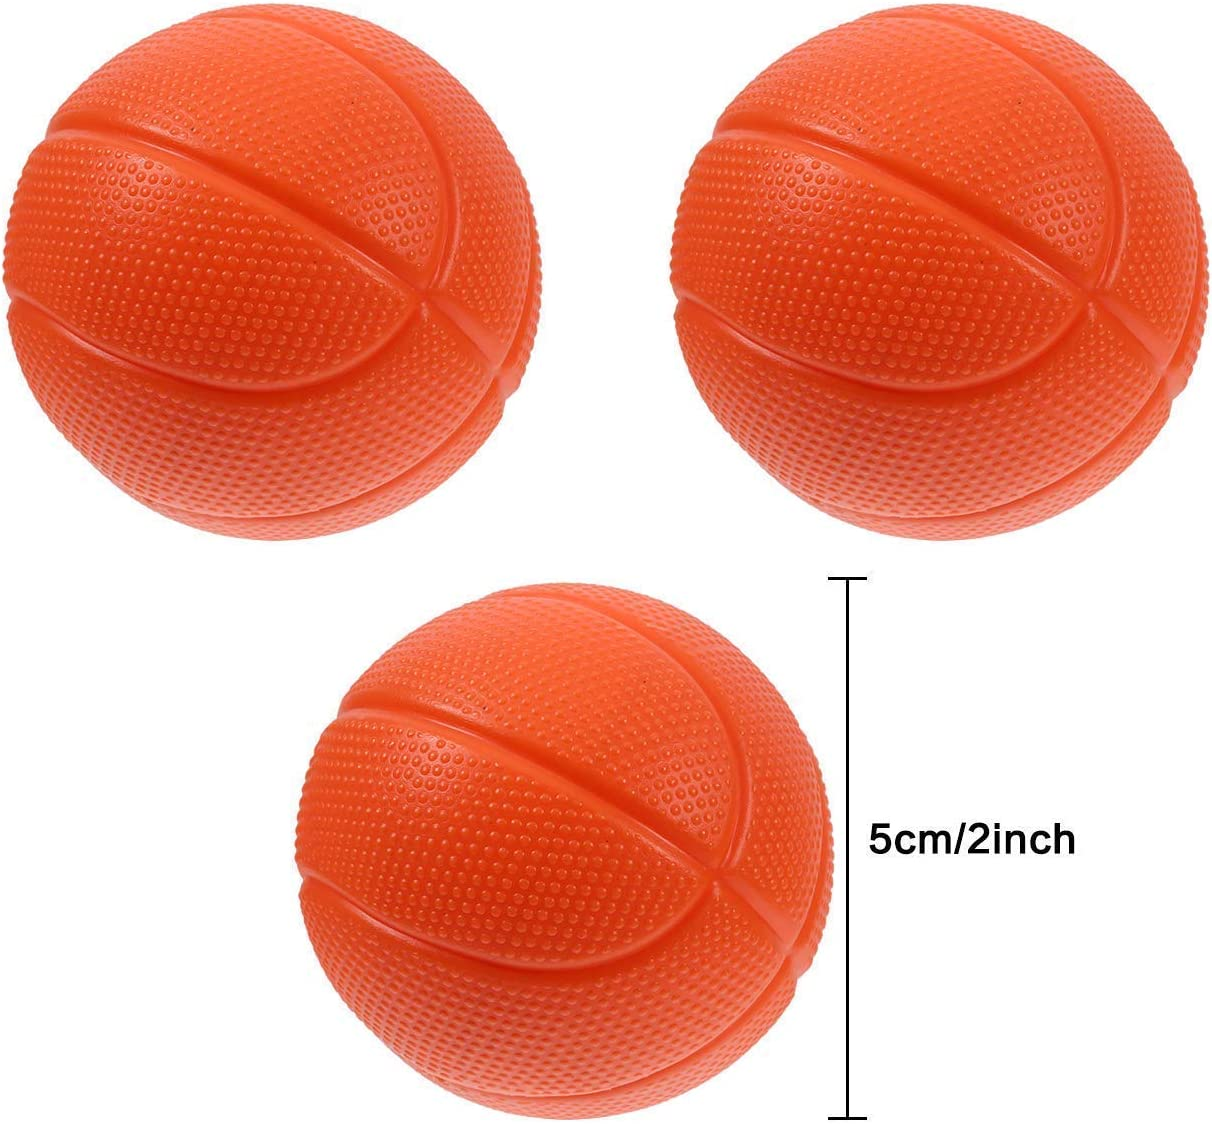 Addmos Baby Bath Toys Fun Basketball Hoop /& Balls Set Bathtub Toys for for 1 2 3 4 5 Years Old Boys Girls Kid /& Toddler Bath Toys Gift Set 3 Balls Included